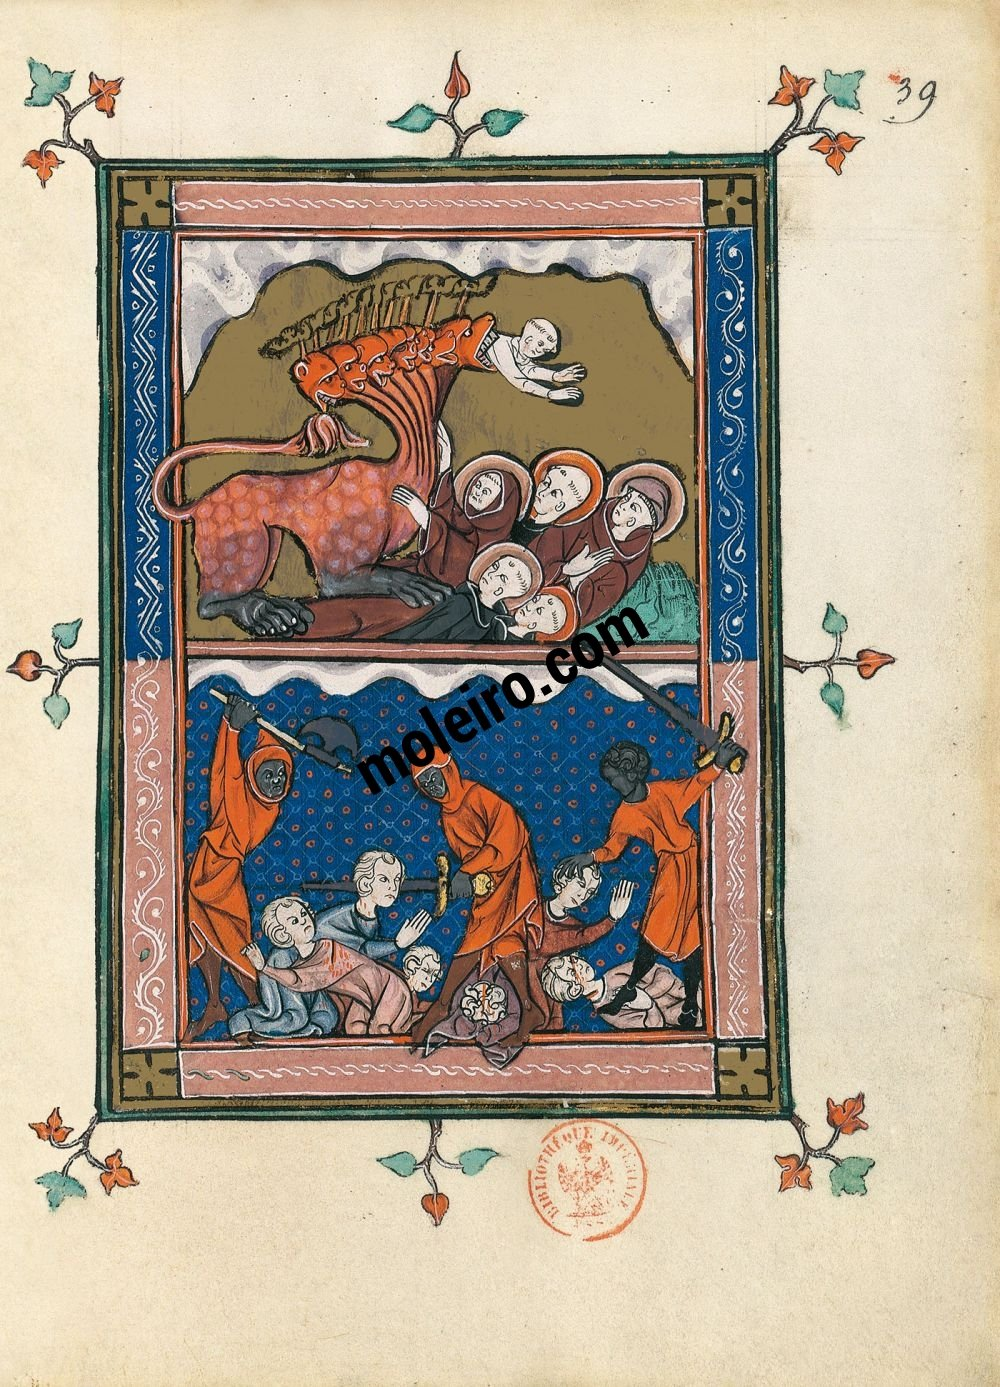 The Apocalypse of 1313 f. 39r, The Beast sets off to wage war upon the saints (Ap. 13, 5-10)